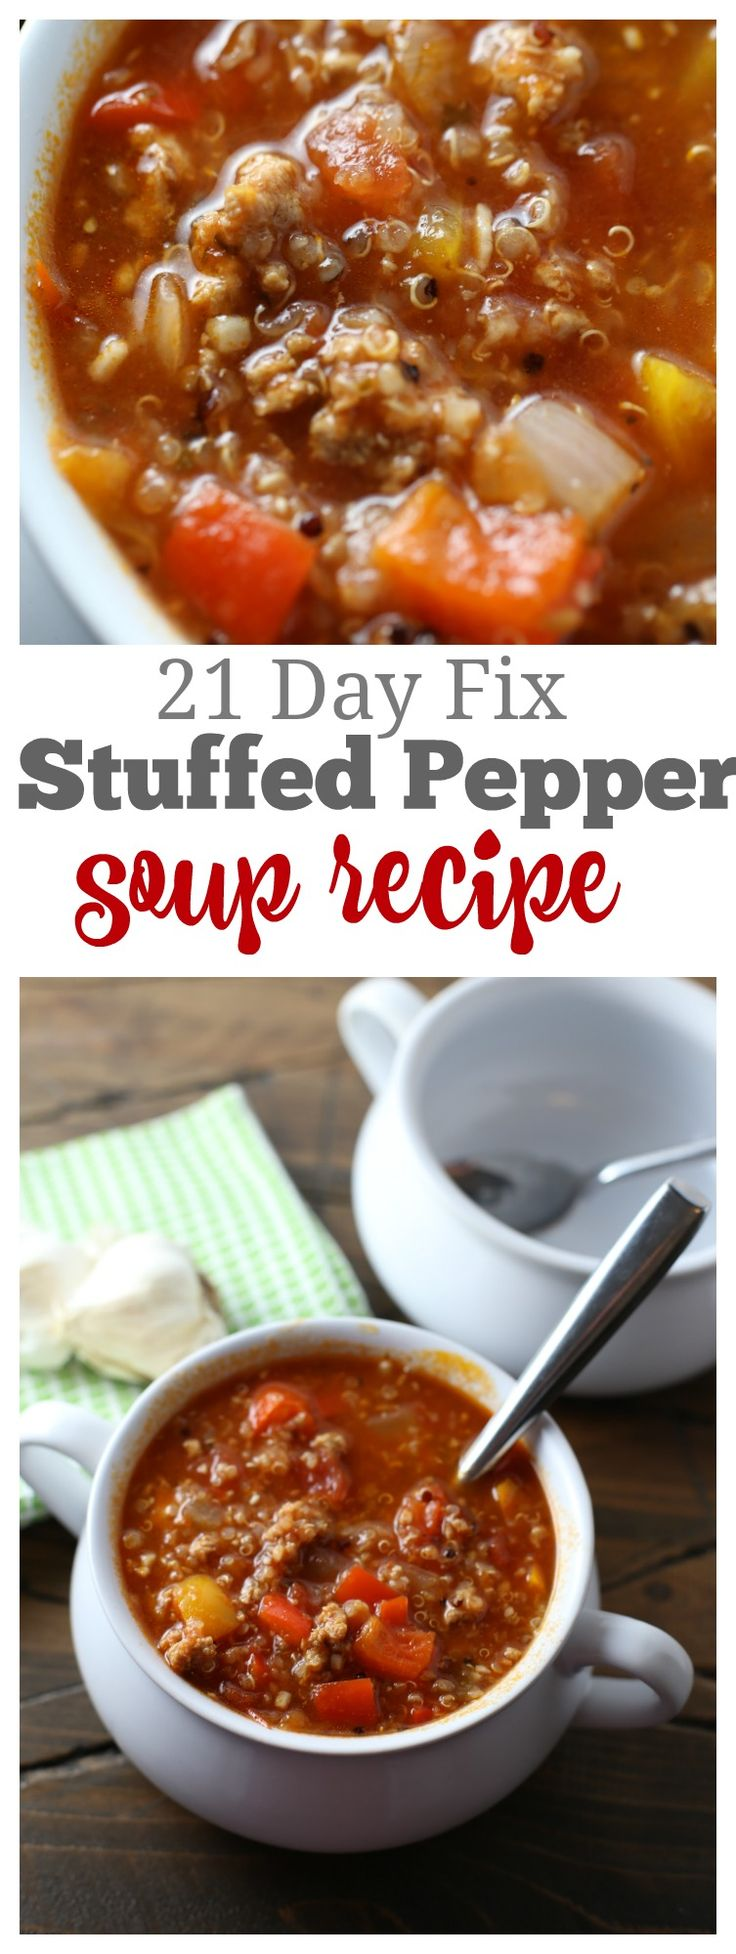 21 Day Fix Stuffed Pepper Soup that your whole family will LOVE! Containers: 1R, 1G, .5Y